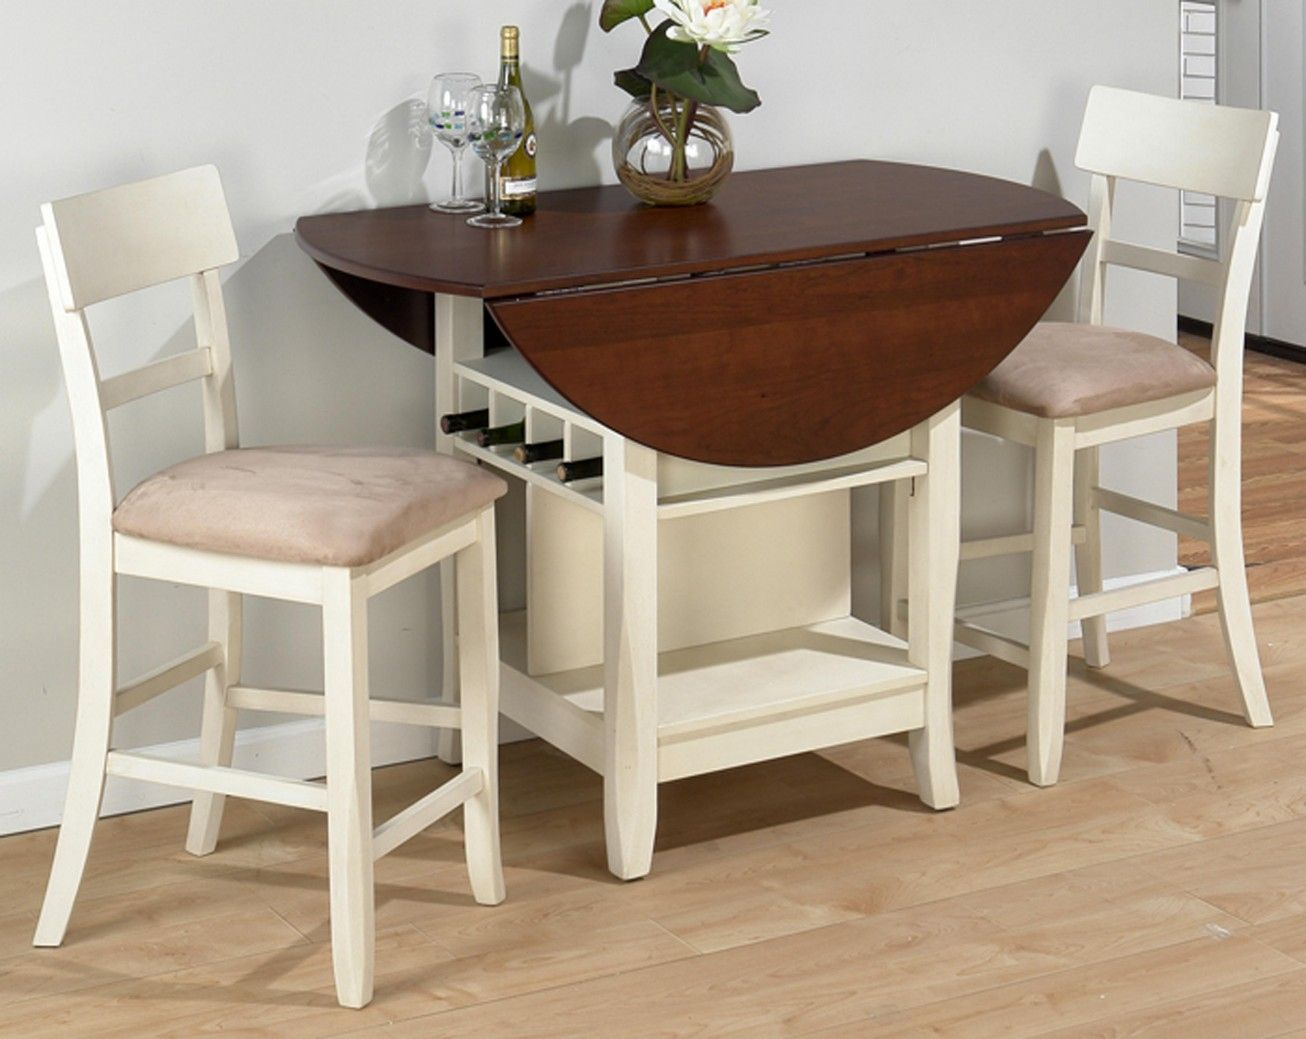 Drop Leaf Kitchen Tables for Small Spaces - Cabinet Ideas for ...